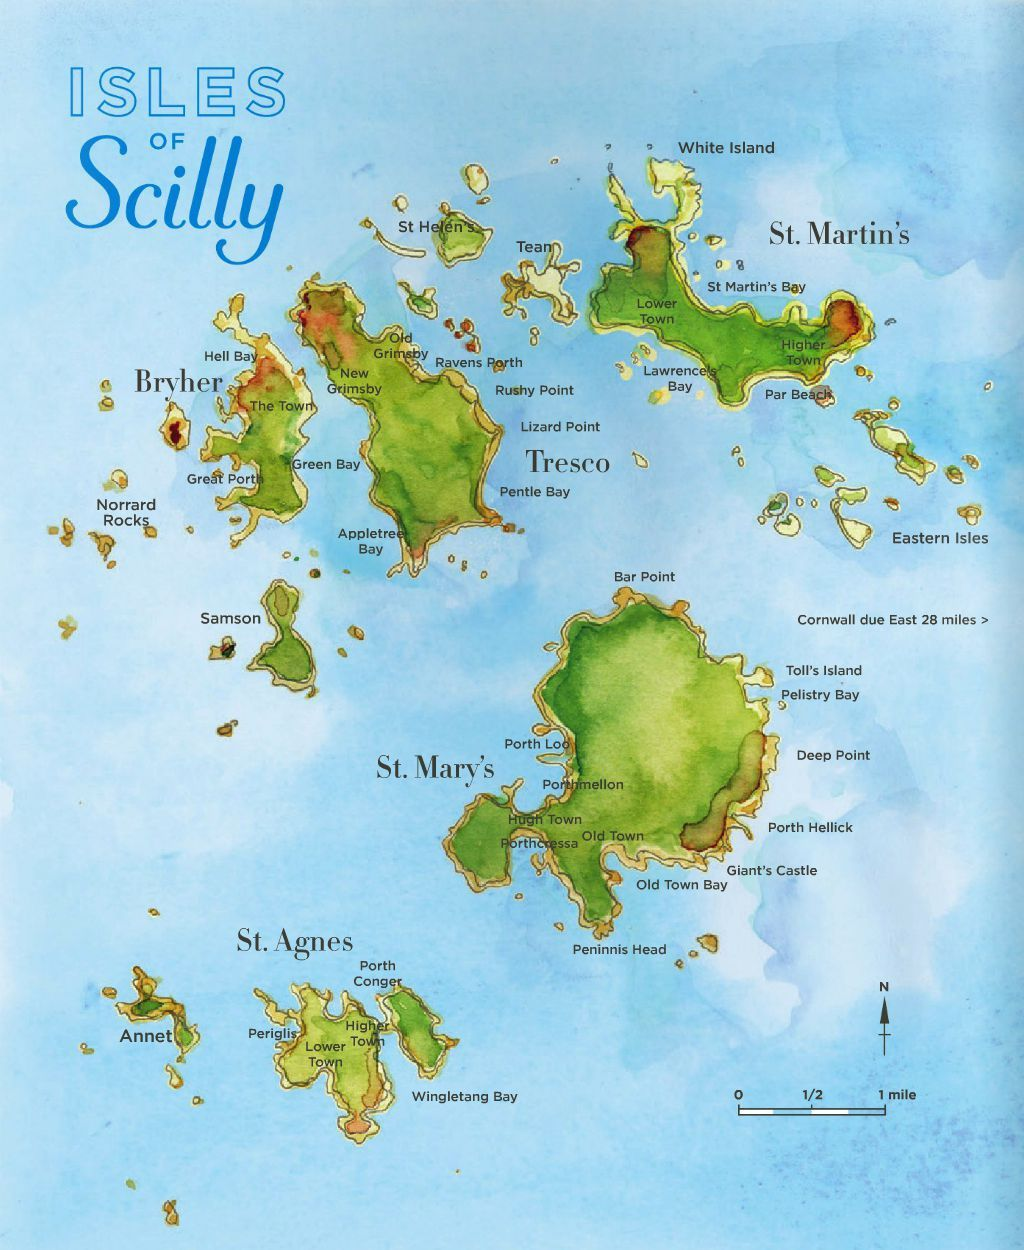 Scilly Isles Map We're Off To The Isles Of Scilly! | City & Map illustrator   城市  Scilly Isles Map